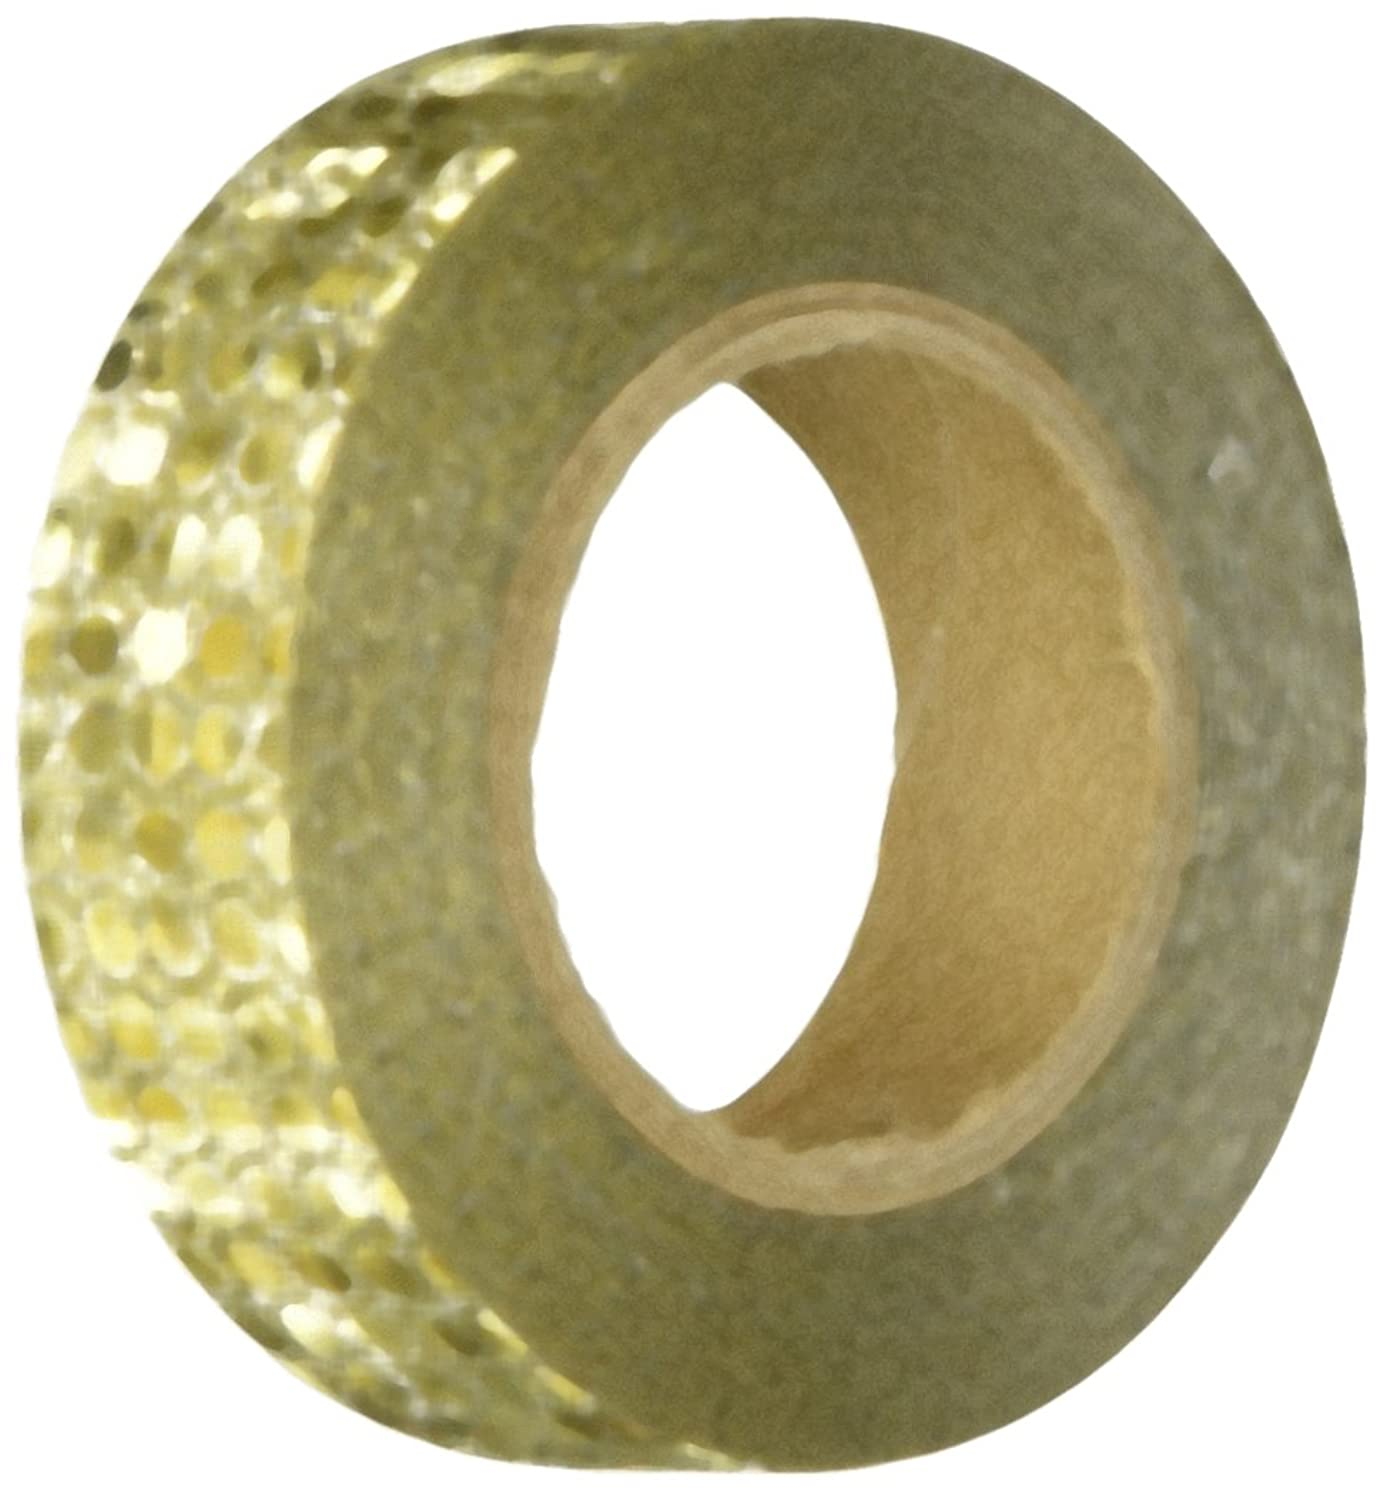 Wrapables Colorful Patterns Washi Masking Tape, Reflective Gold Bubbles